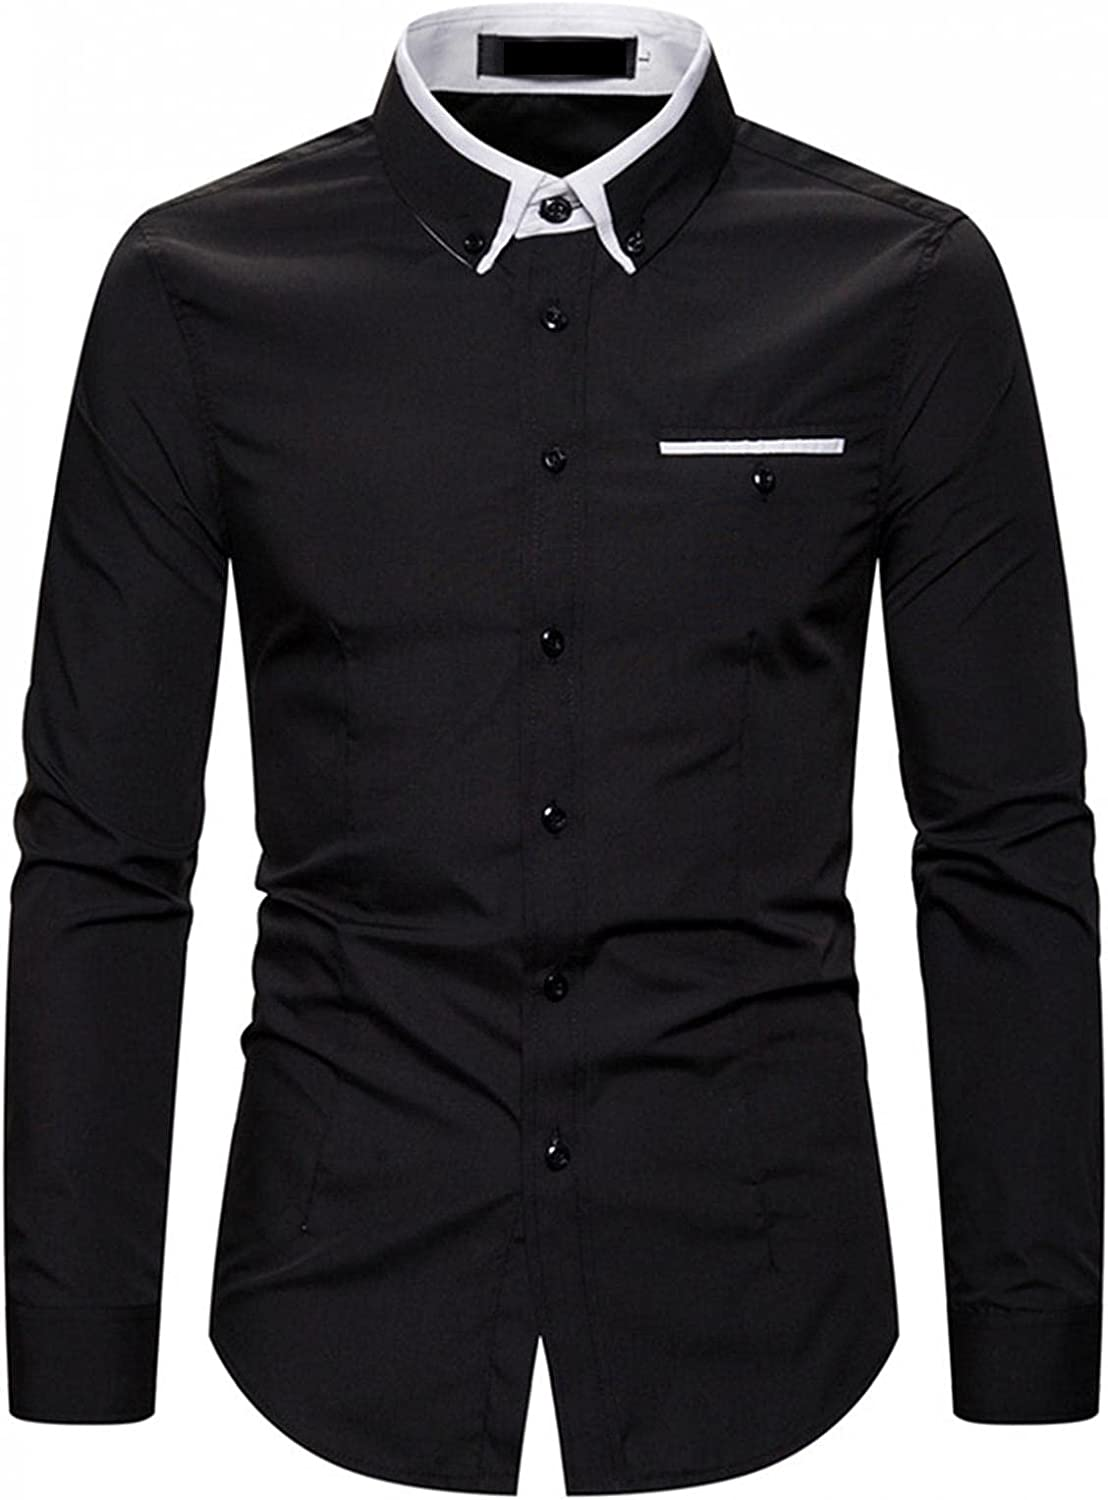 Men's Business Work Dress Shirt Slim Fit Turndown Collar Long Sleeve Casual Solid Color Shirt Top Blouse